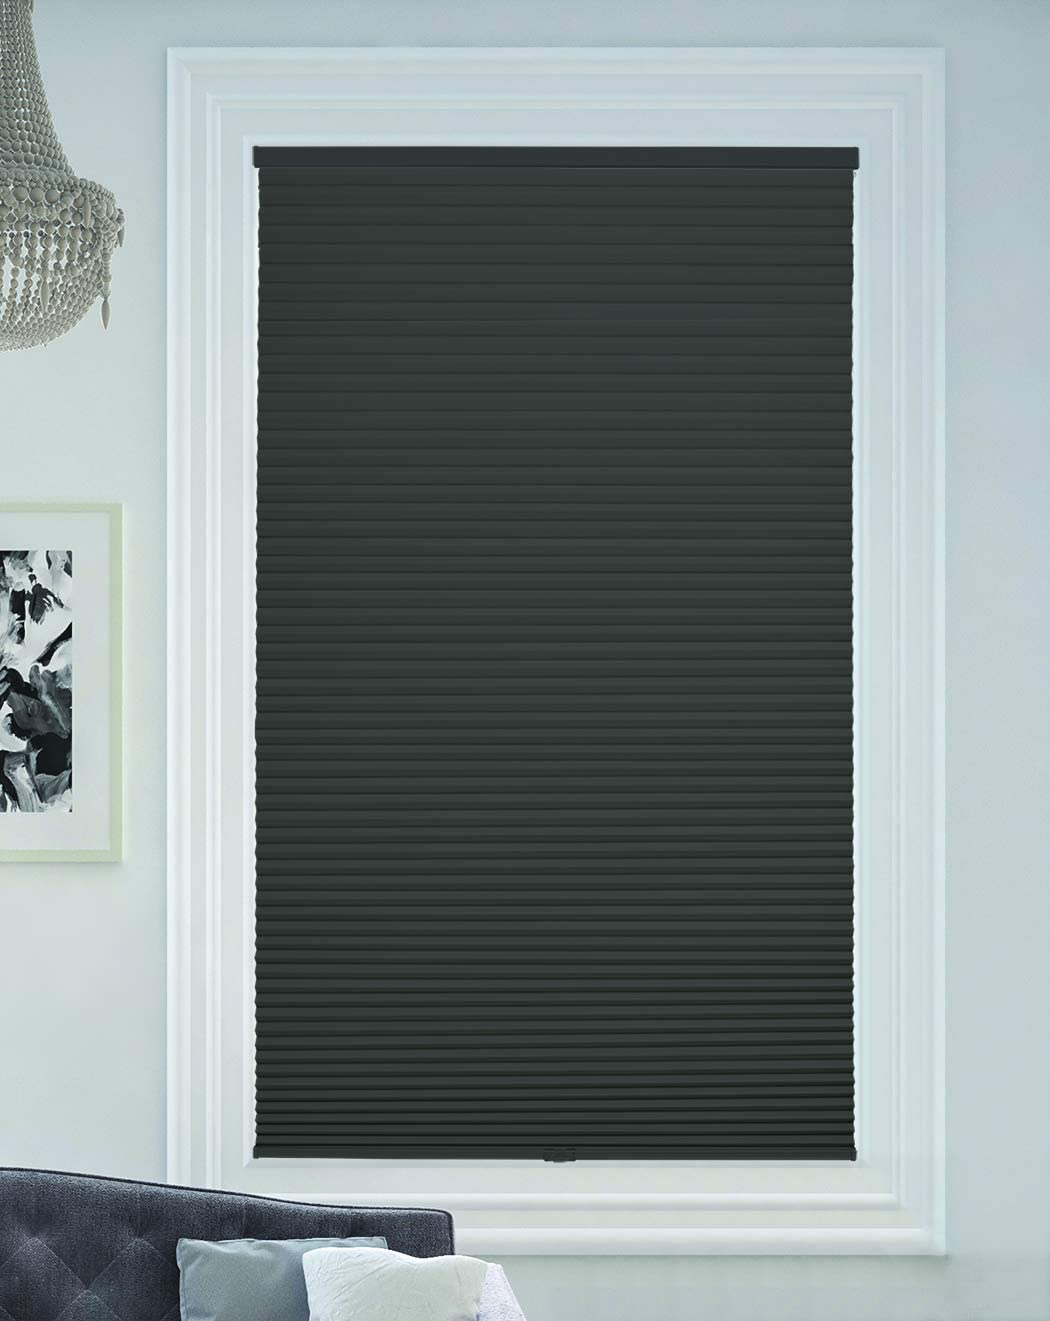 Anthracite BlindsAvenue Cellular Honeycomb Cordless Shade 9//16 Single Cell Blackout Size: 18 W x 72 H